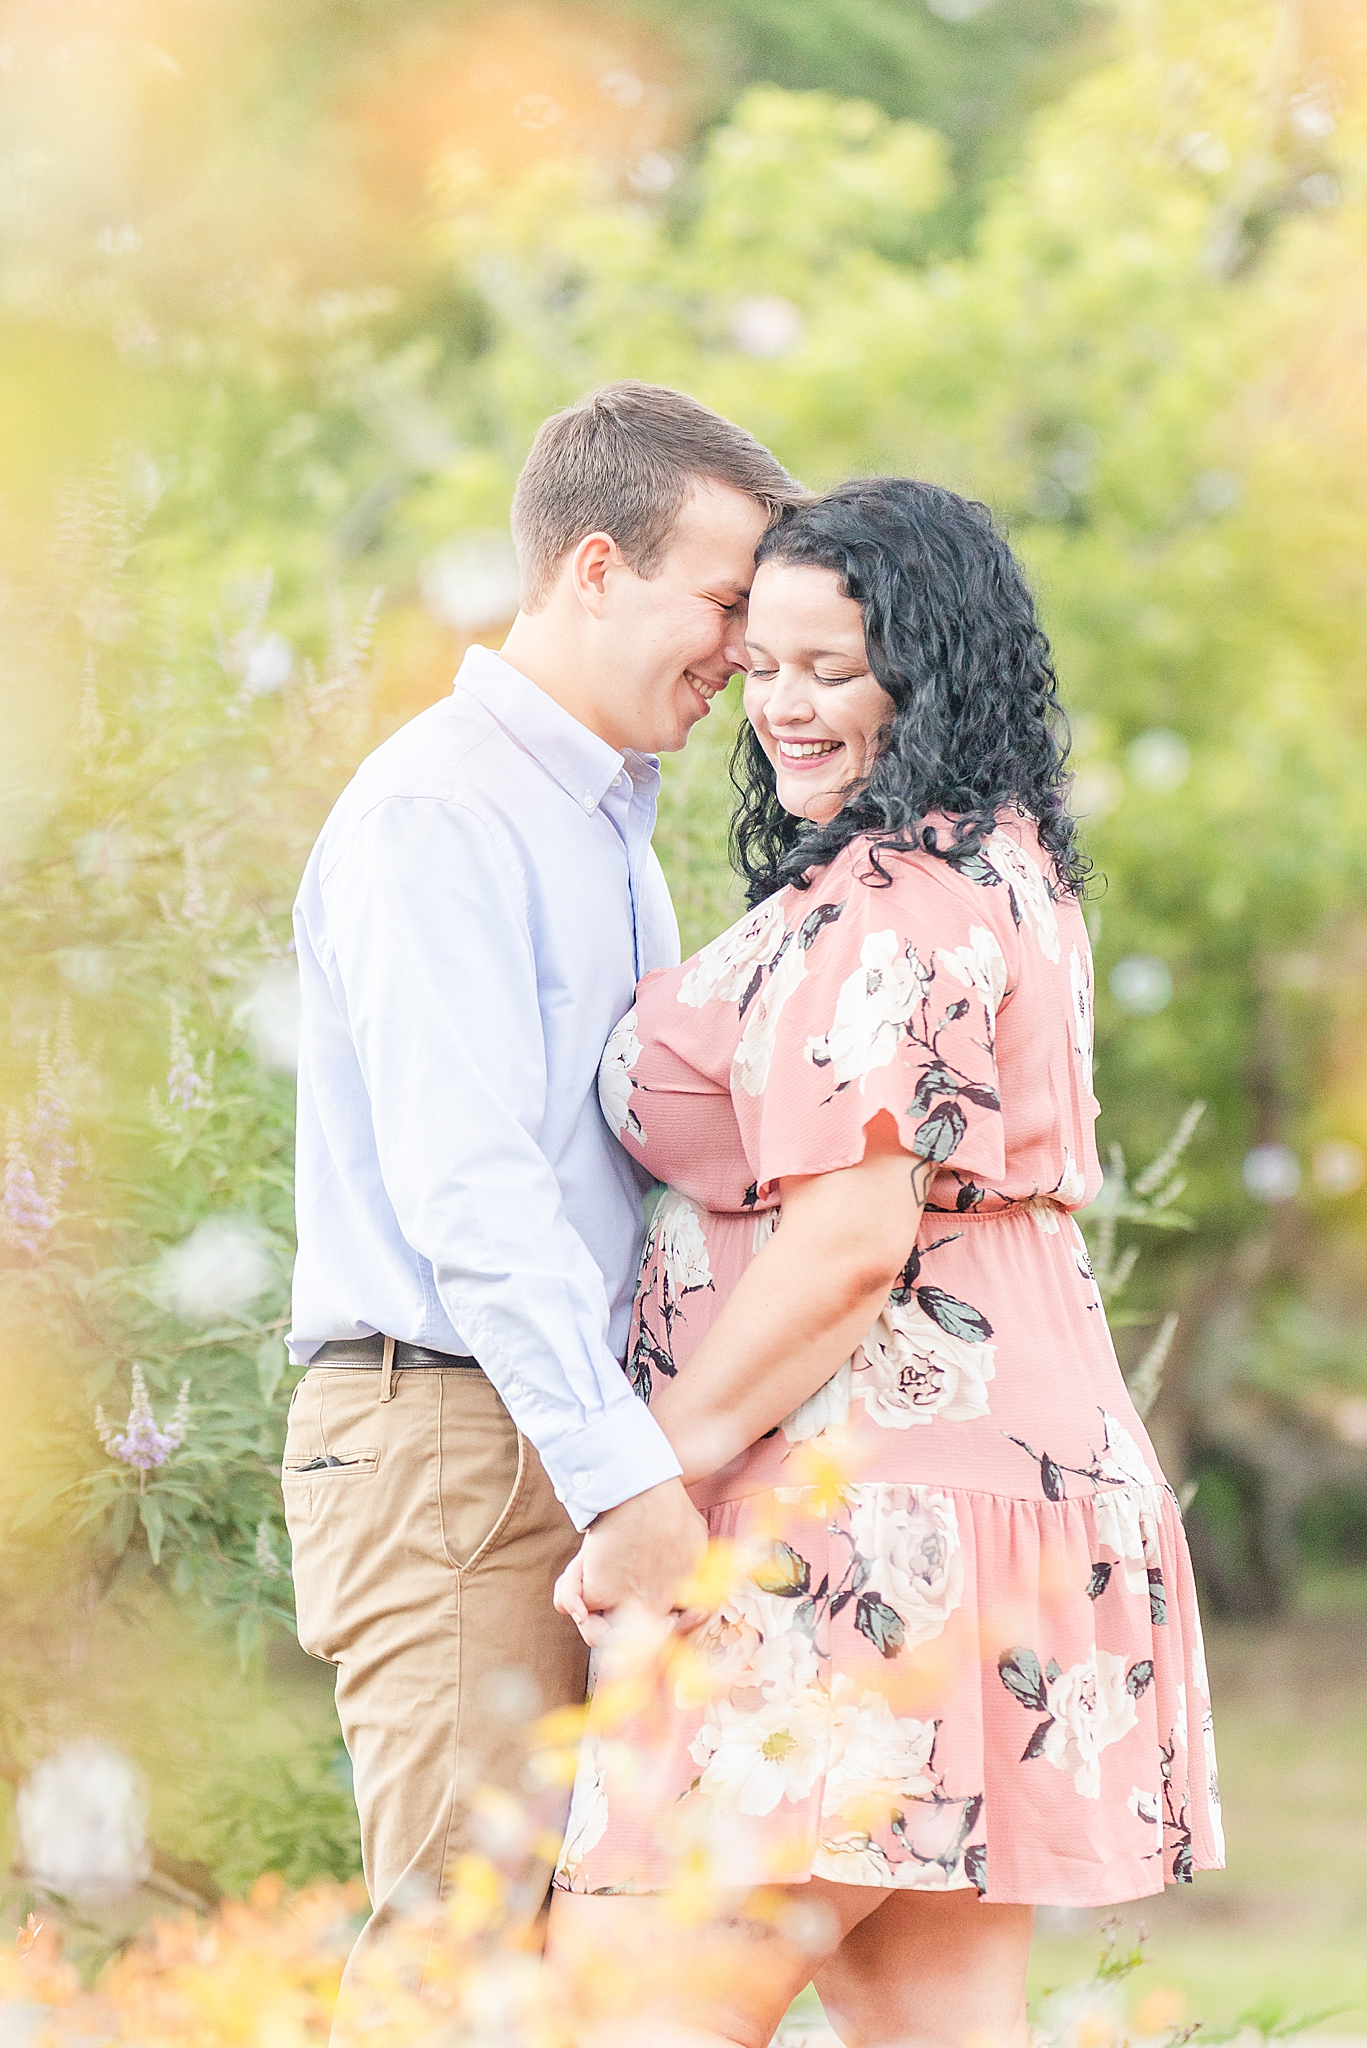 groom nuzzles bride's forehead during Alabama engagement session